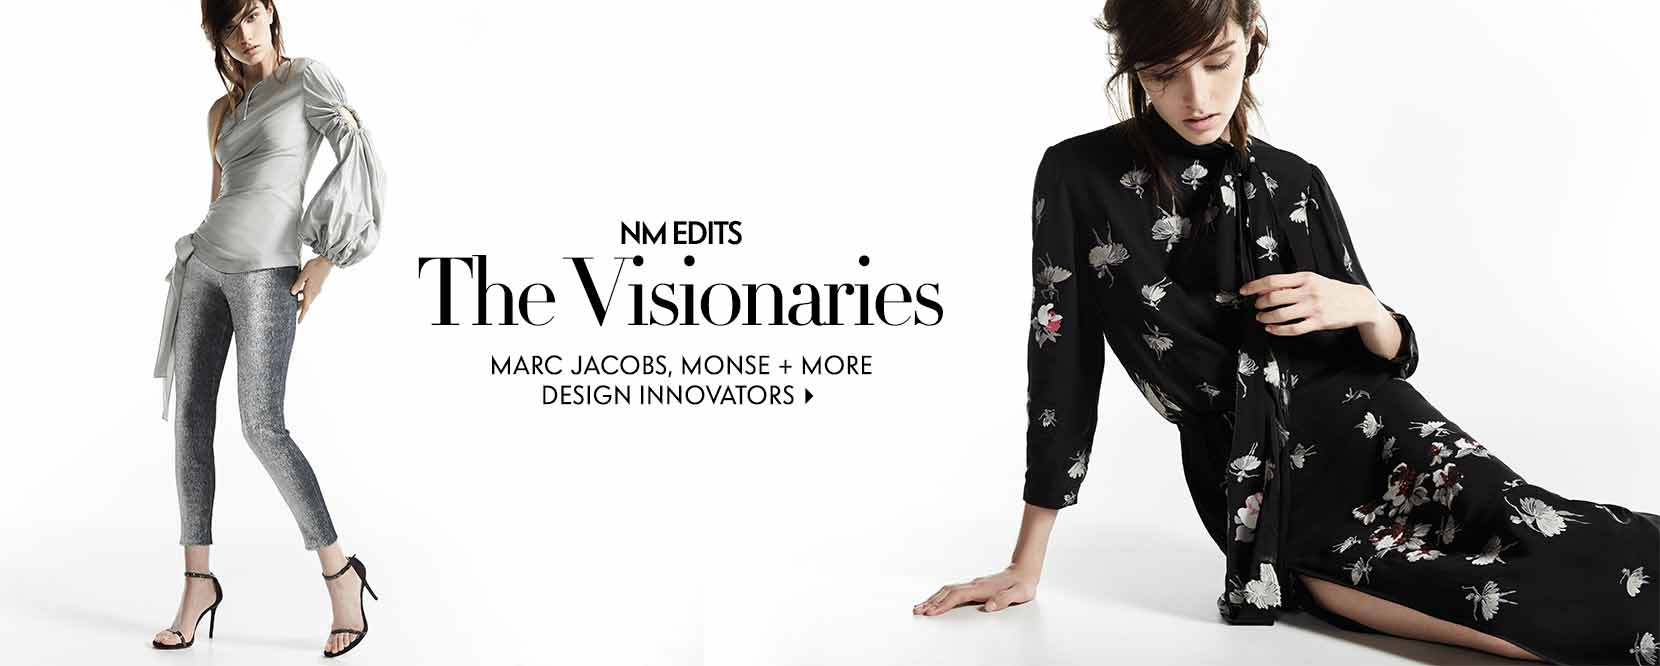 NM EDITS The Visionaries Marc Jacobs, monse and more design innovators